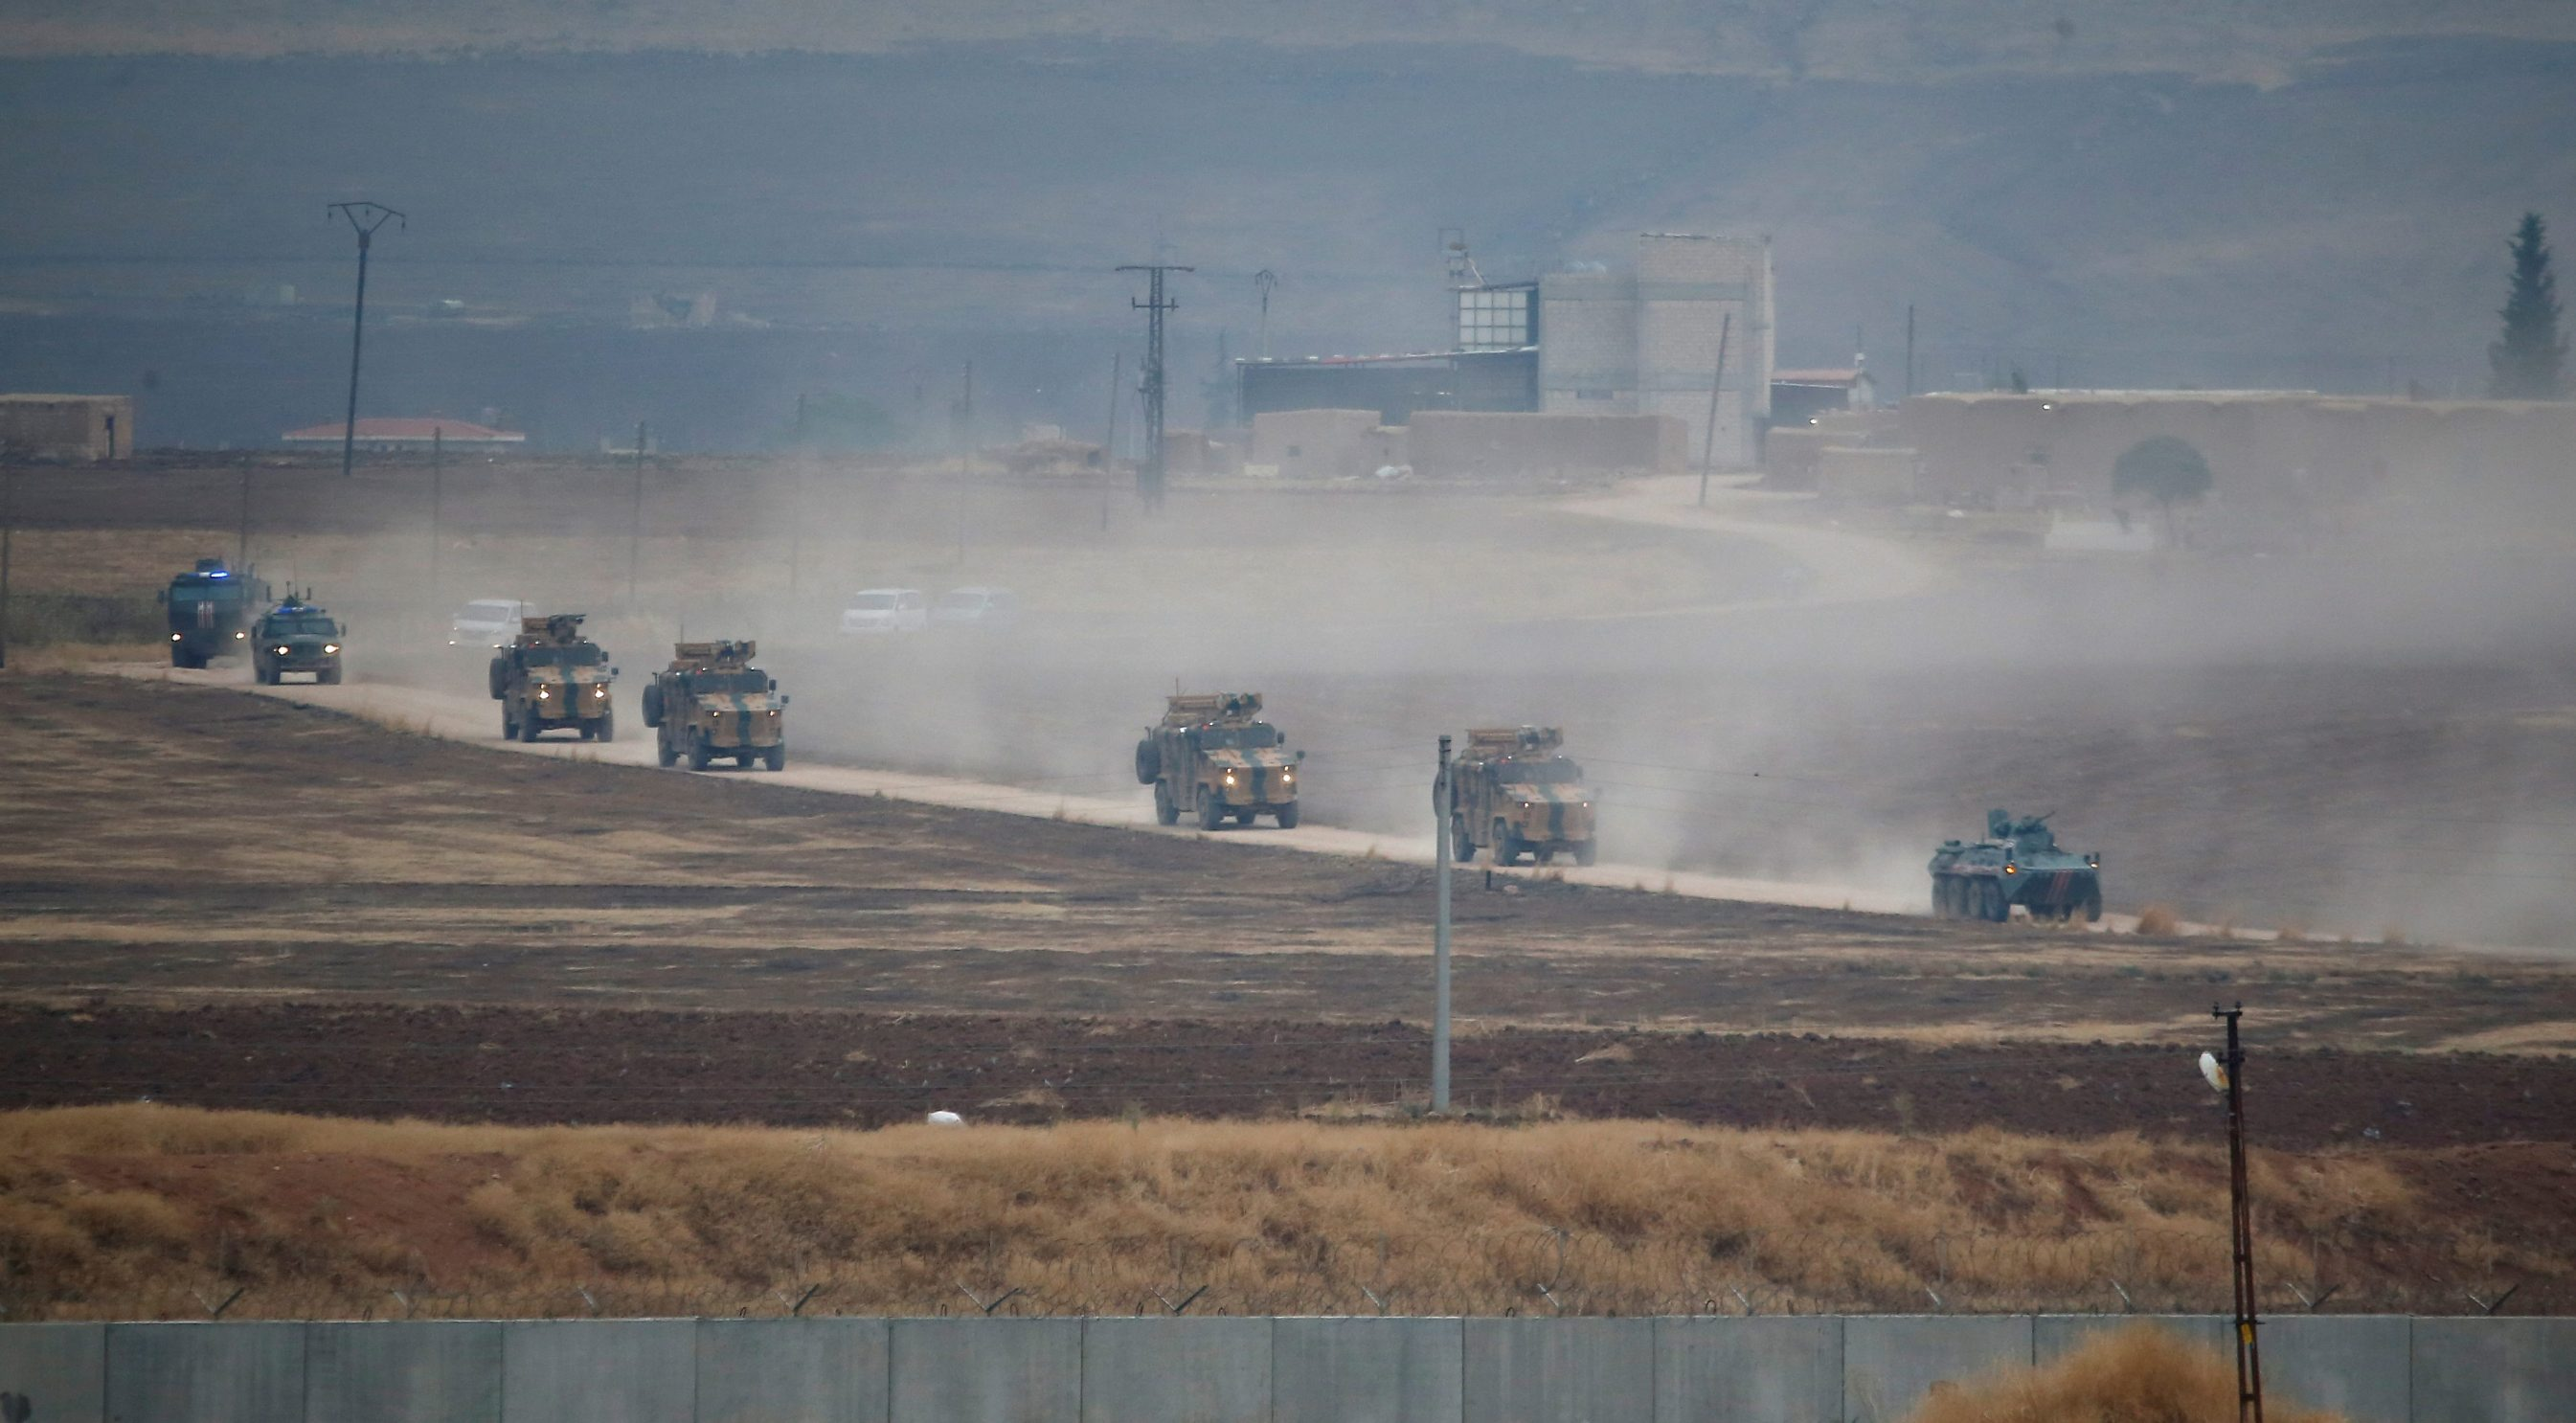 Turkish and Russian military vehicles return following a joint patrol in northeast Syria, as they are pictured from near the Turkish border town of Kiziltepe in Mardin province, Turkey, November 1, 2019. REUTERS/Kemal Aslan